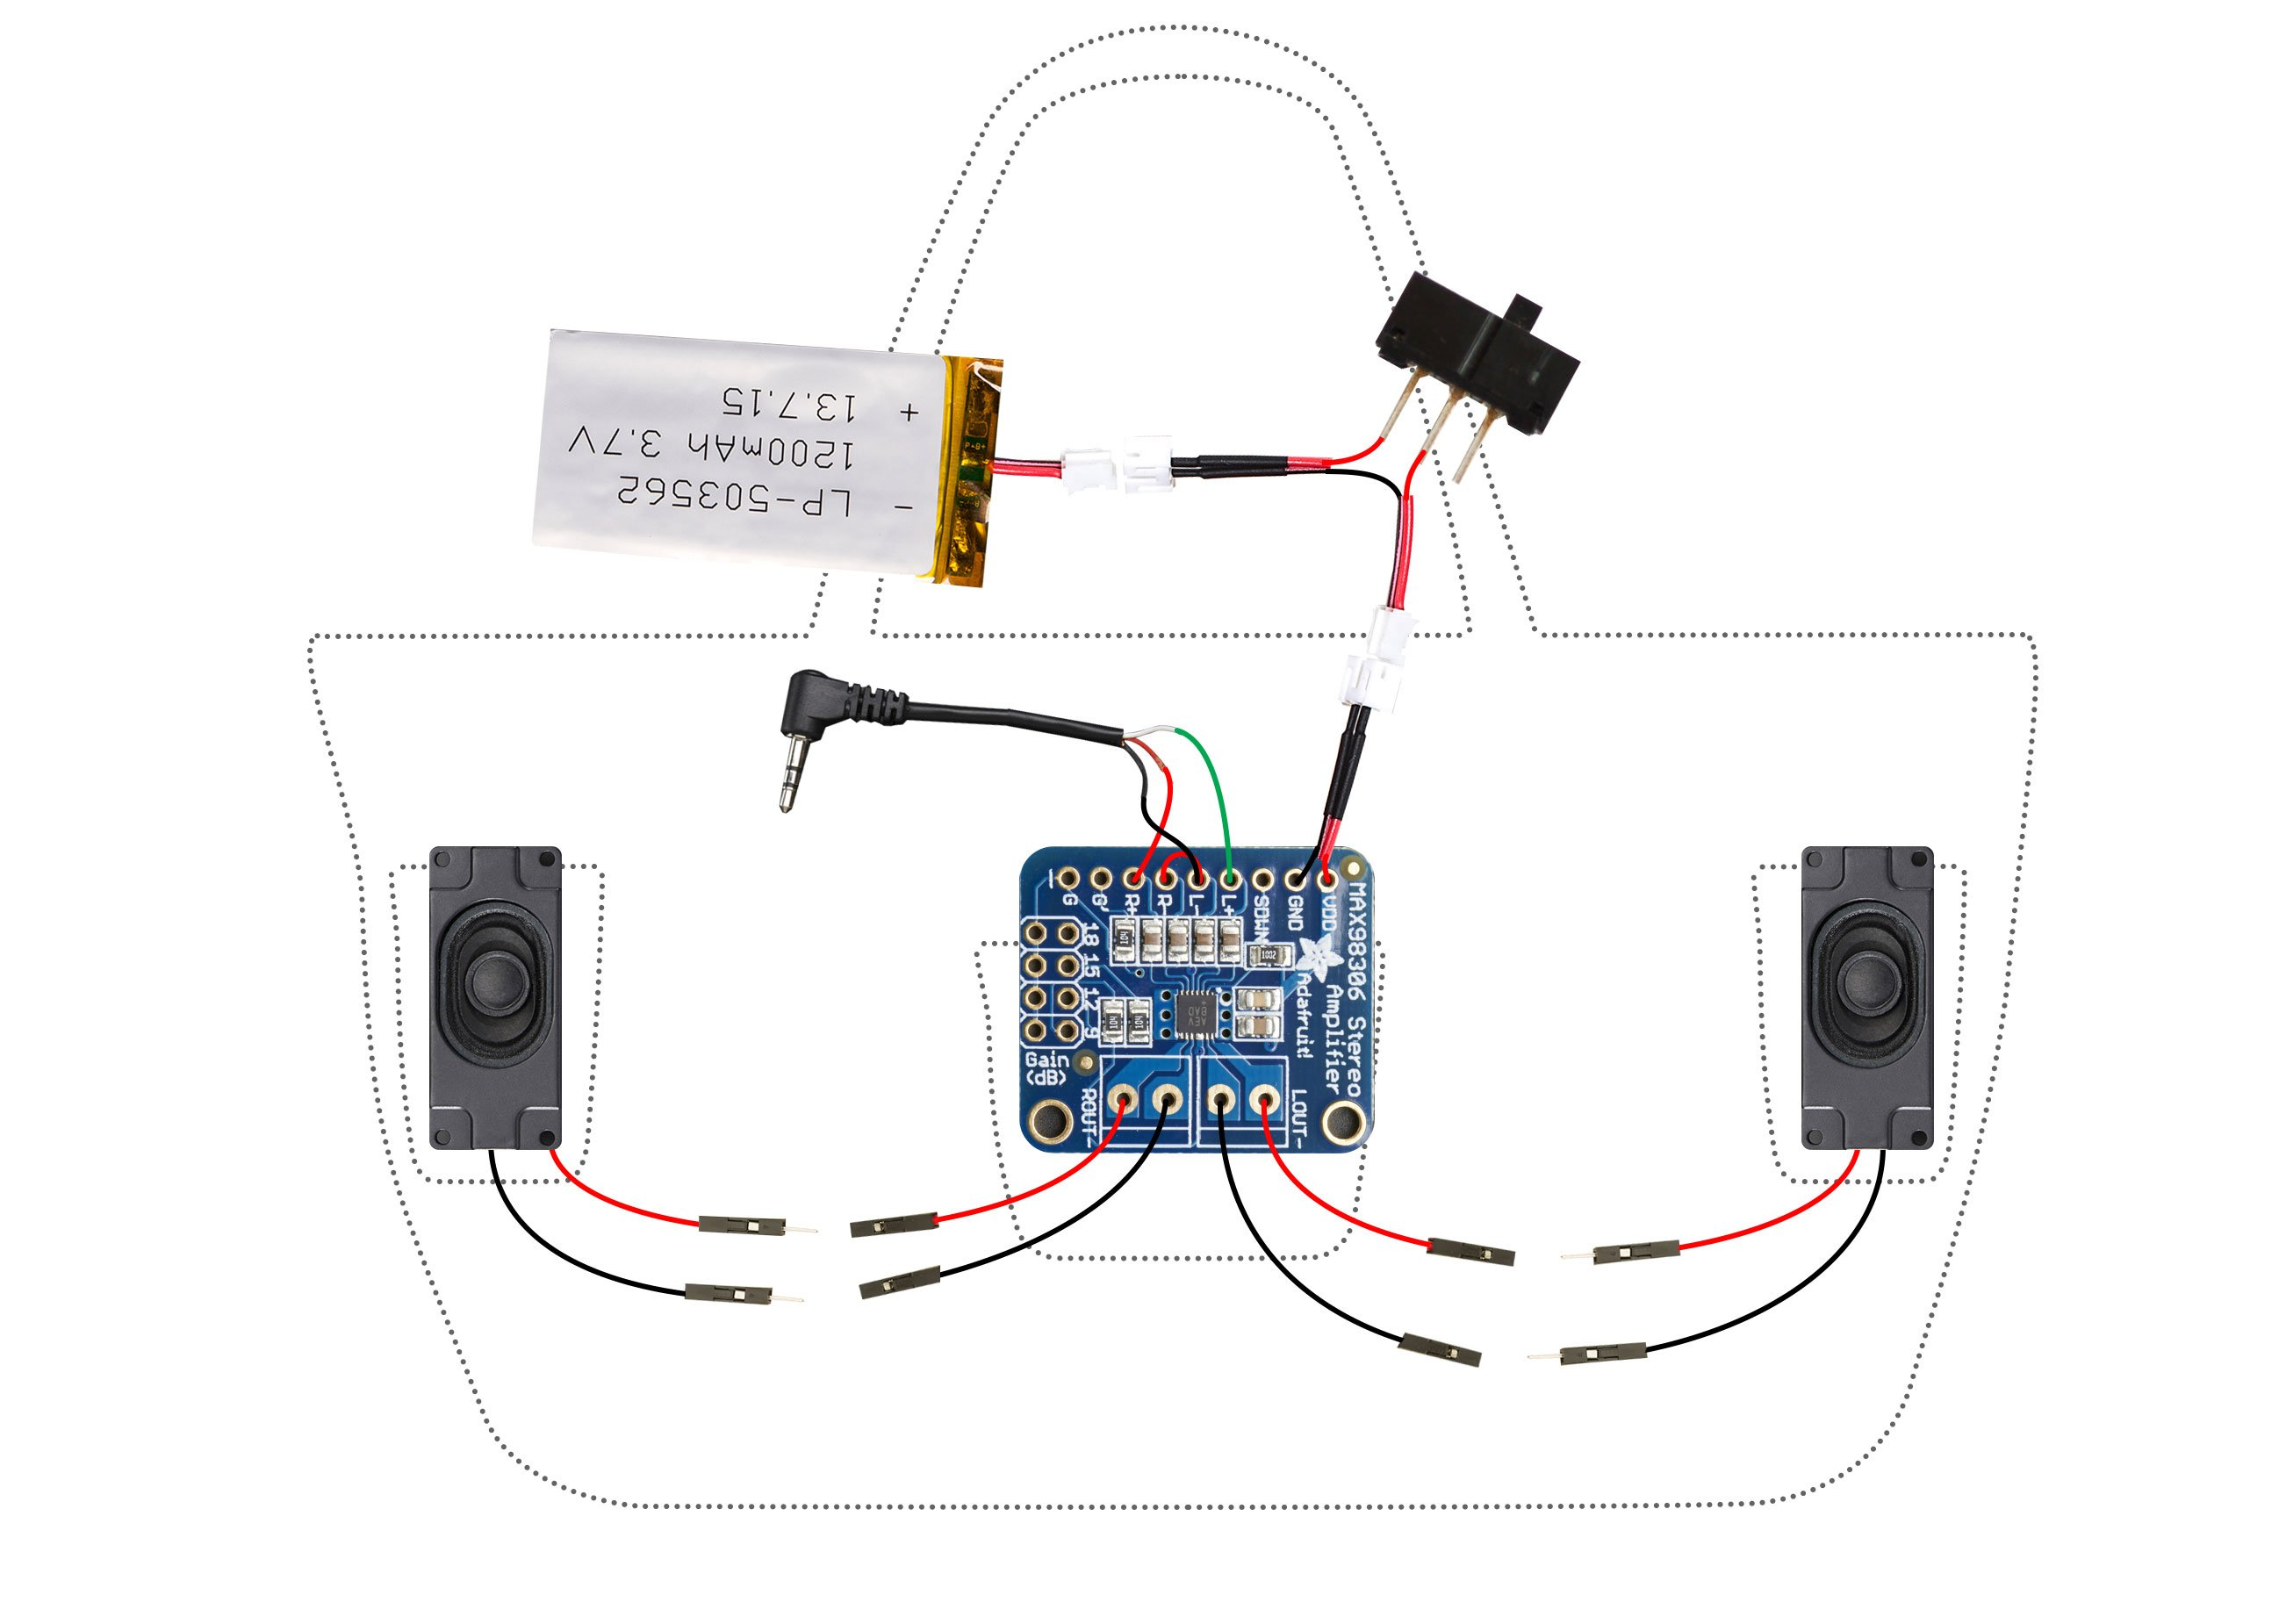 circuit diagram boombox beach bag with audio amp and speakers rh learn adafruit com bluetooth stereo wiring diagram diy bluetooth speaker wiring diagram